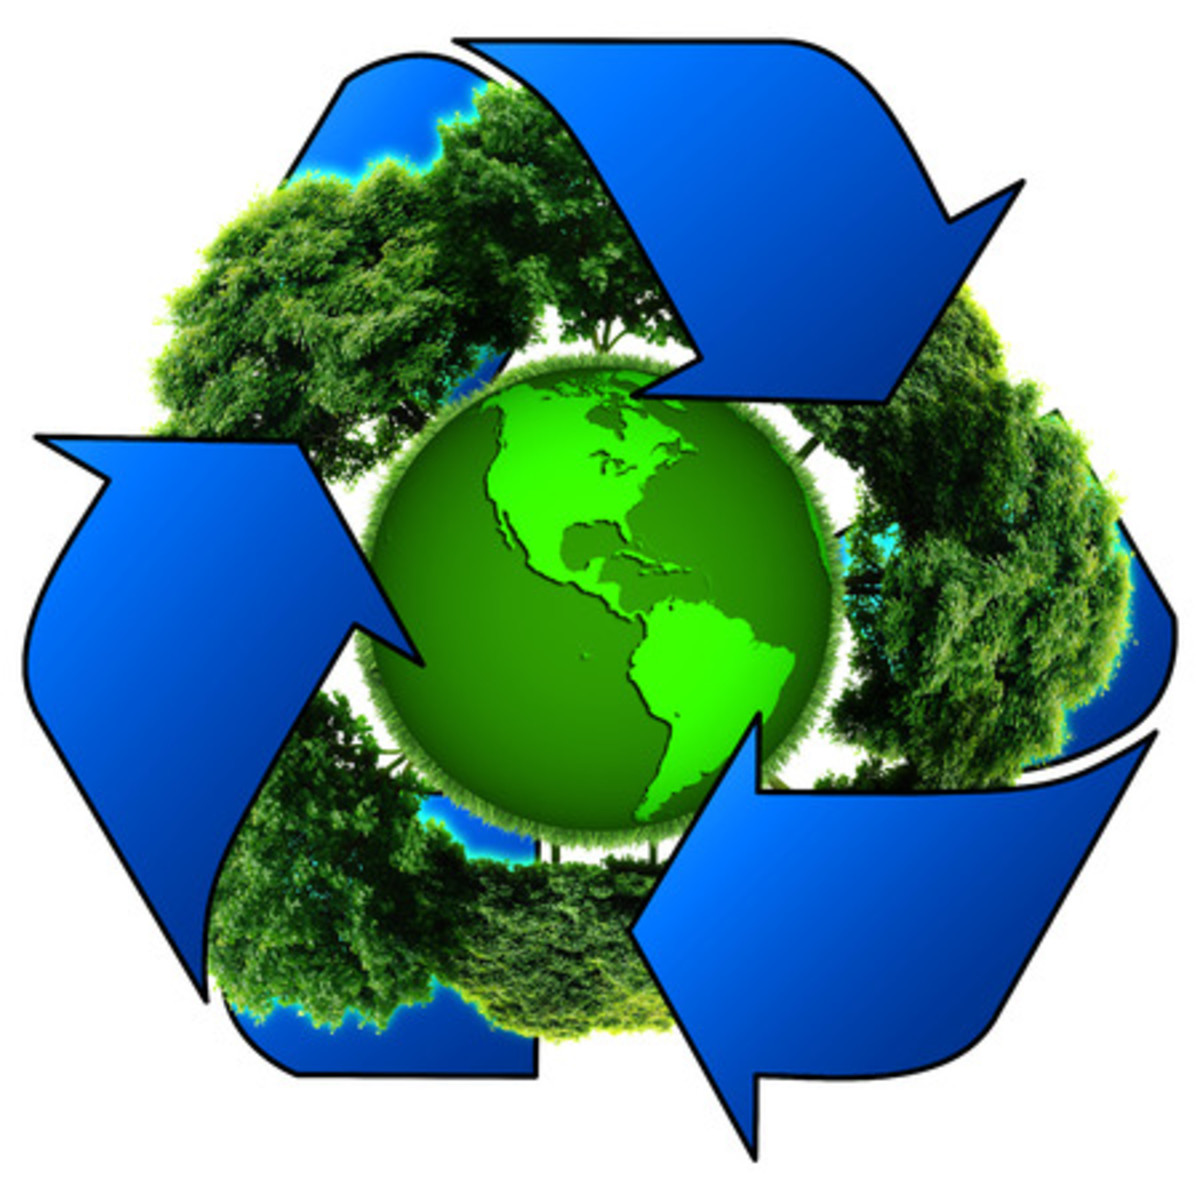 Reuse, Reduce, Recycle! You Can Help Save The Planet in Your Own Small Way!